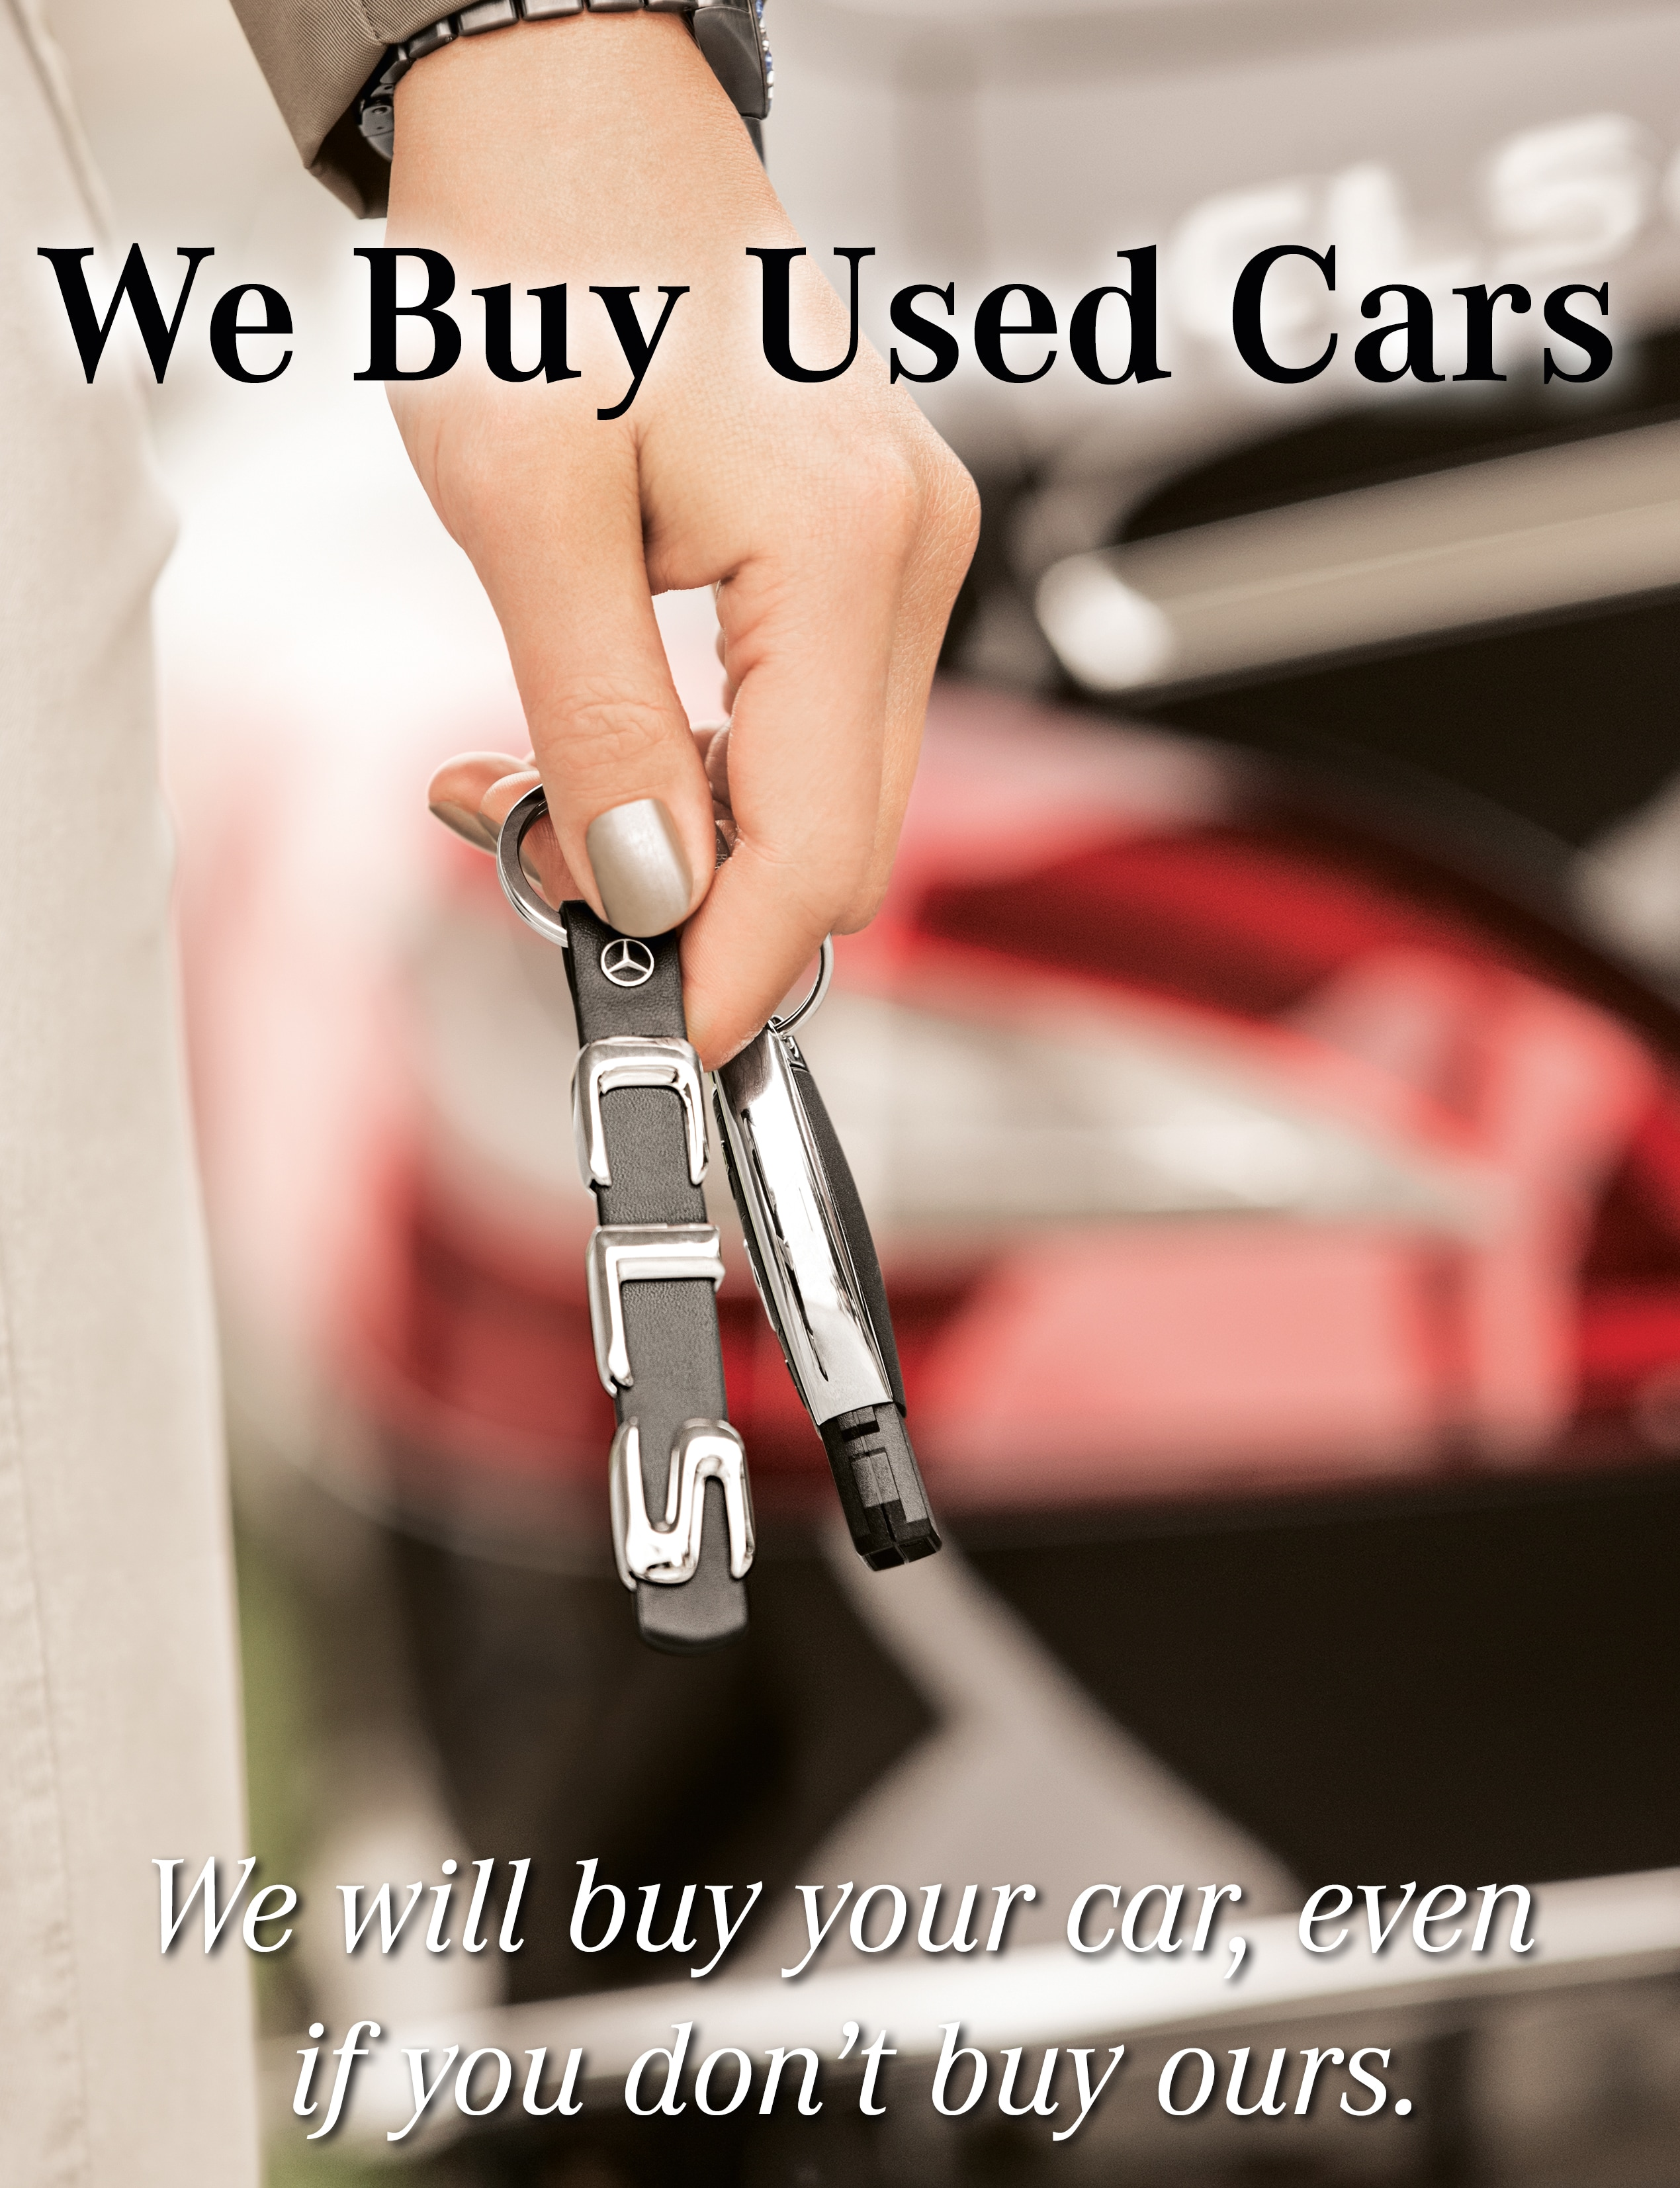 We Buy Used Cars - Sell Us Your Car in Oklahoma City